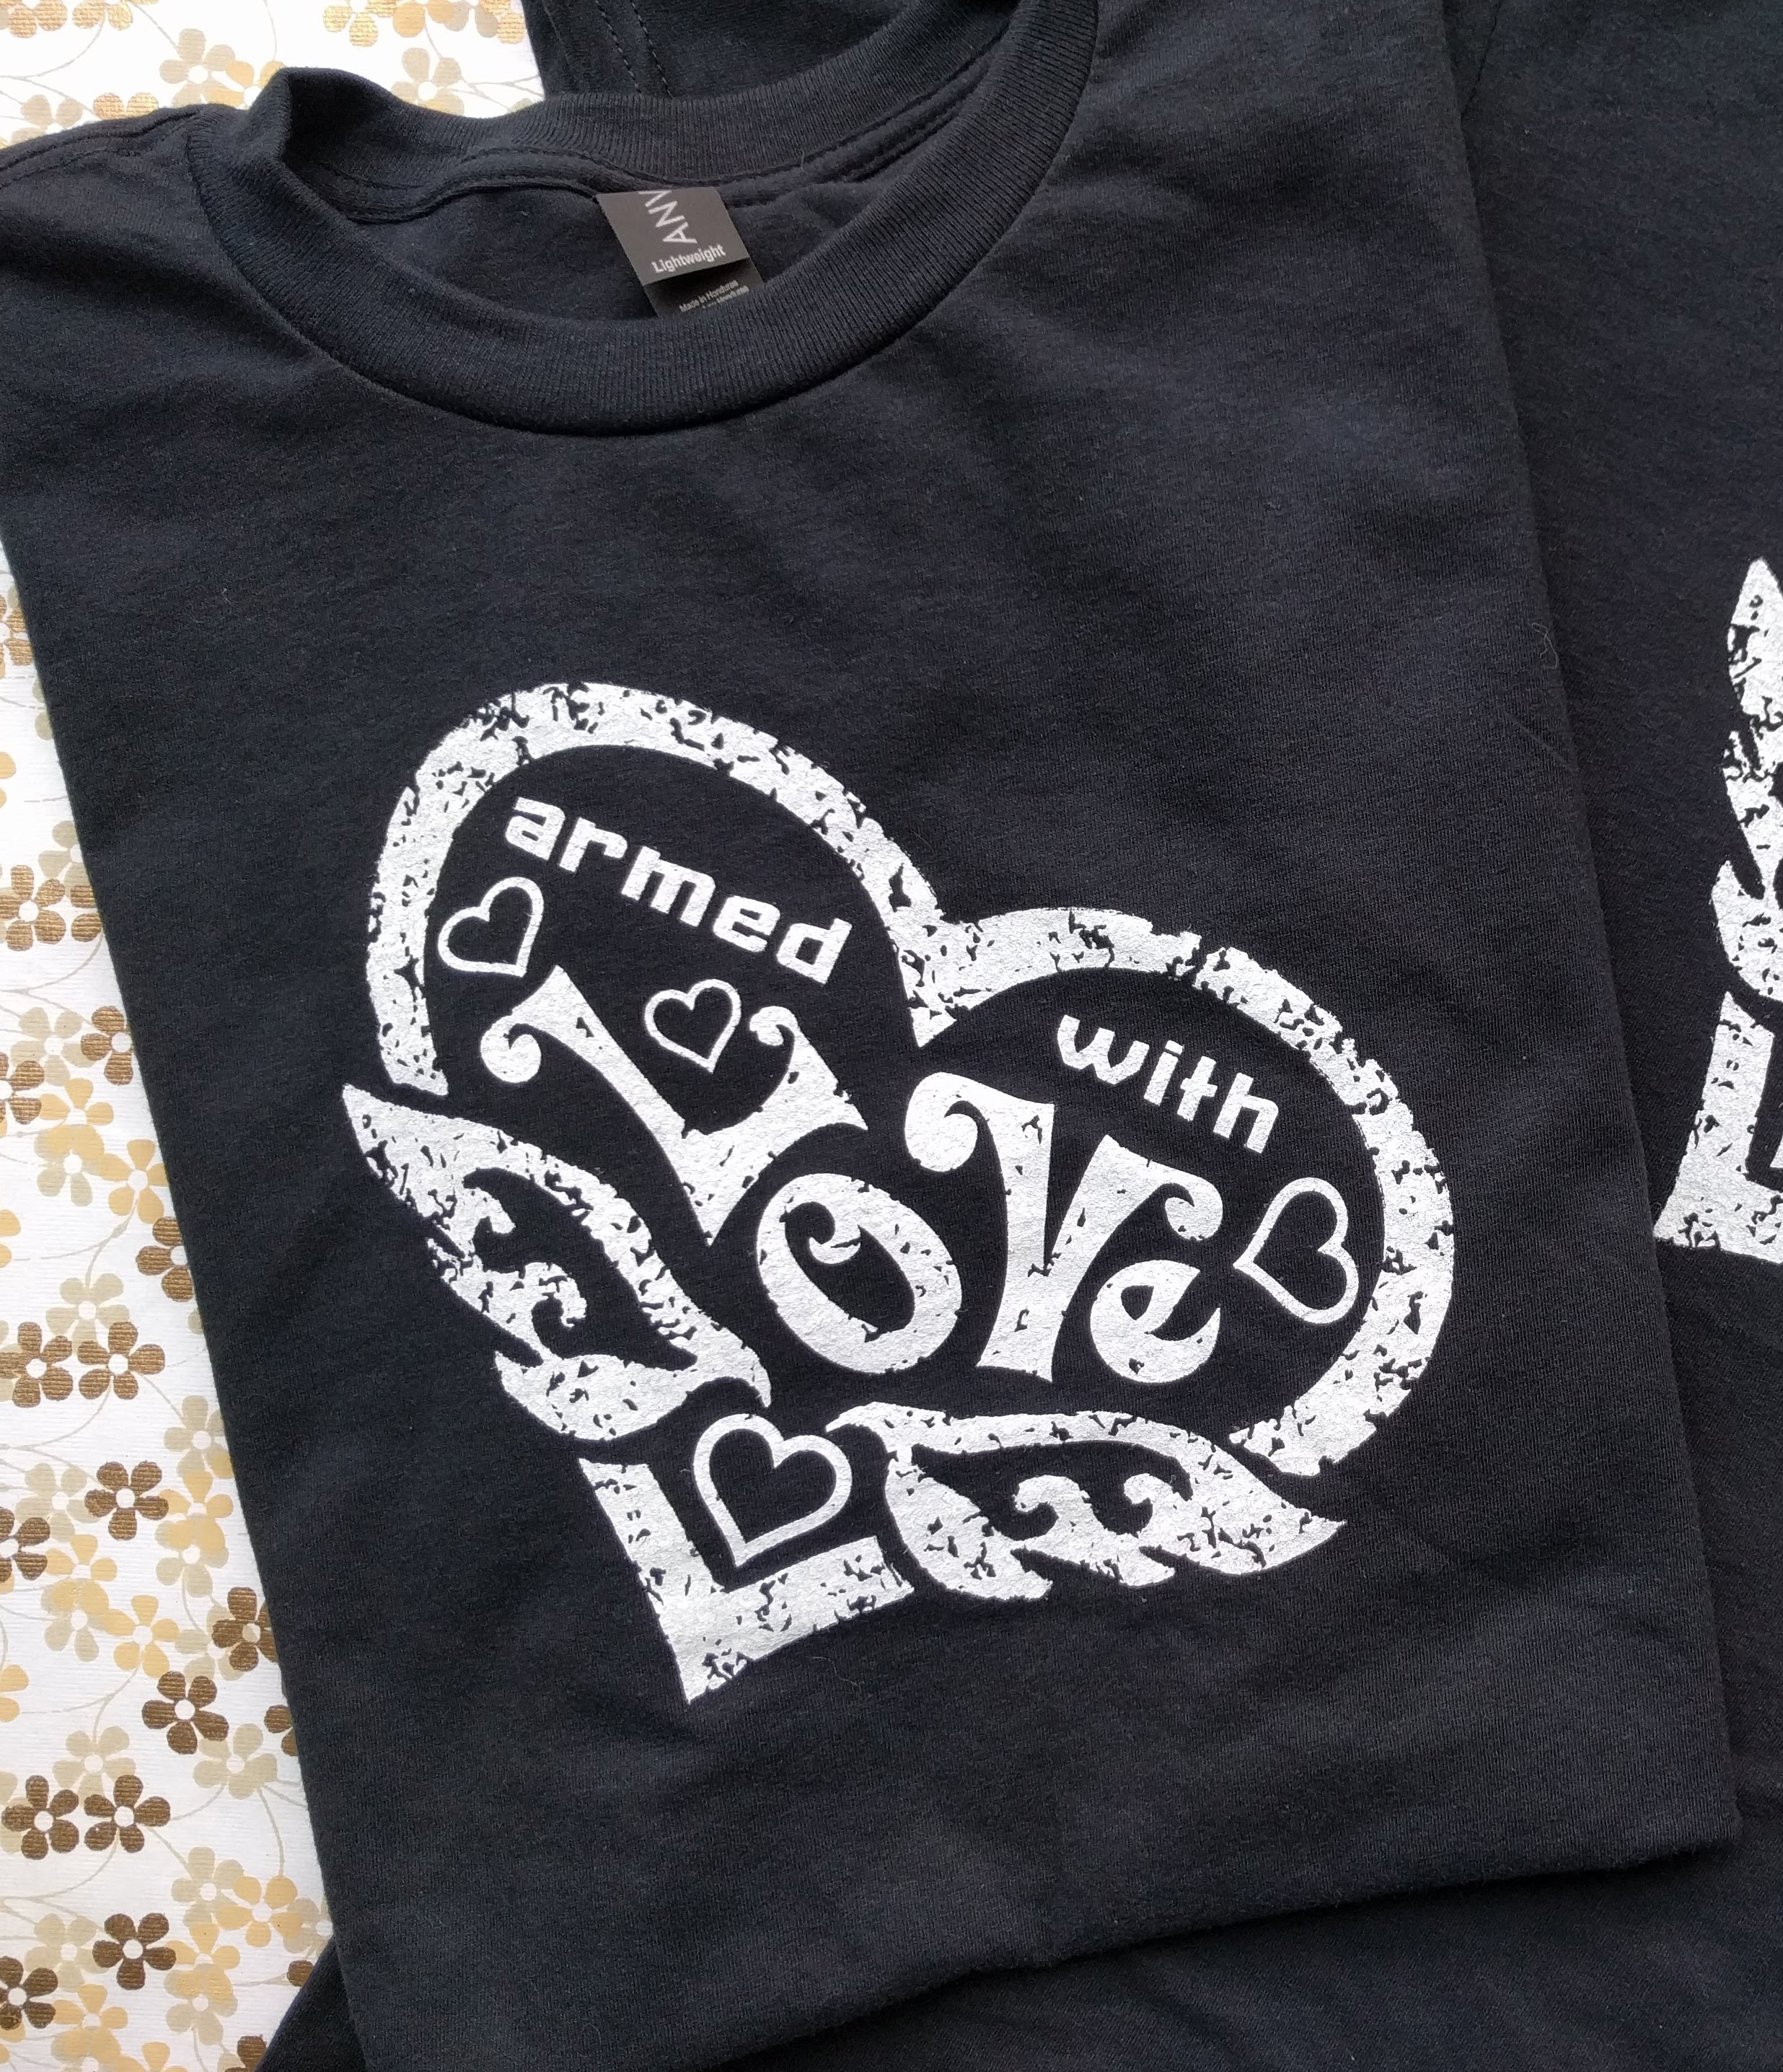 Armed With Love Men's t-shirt